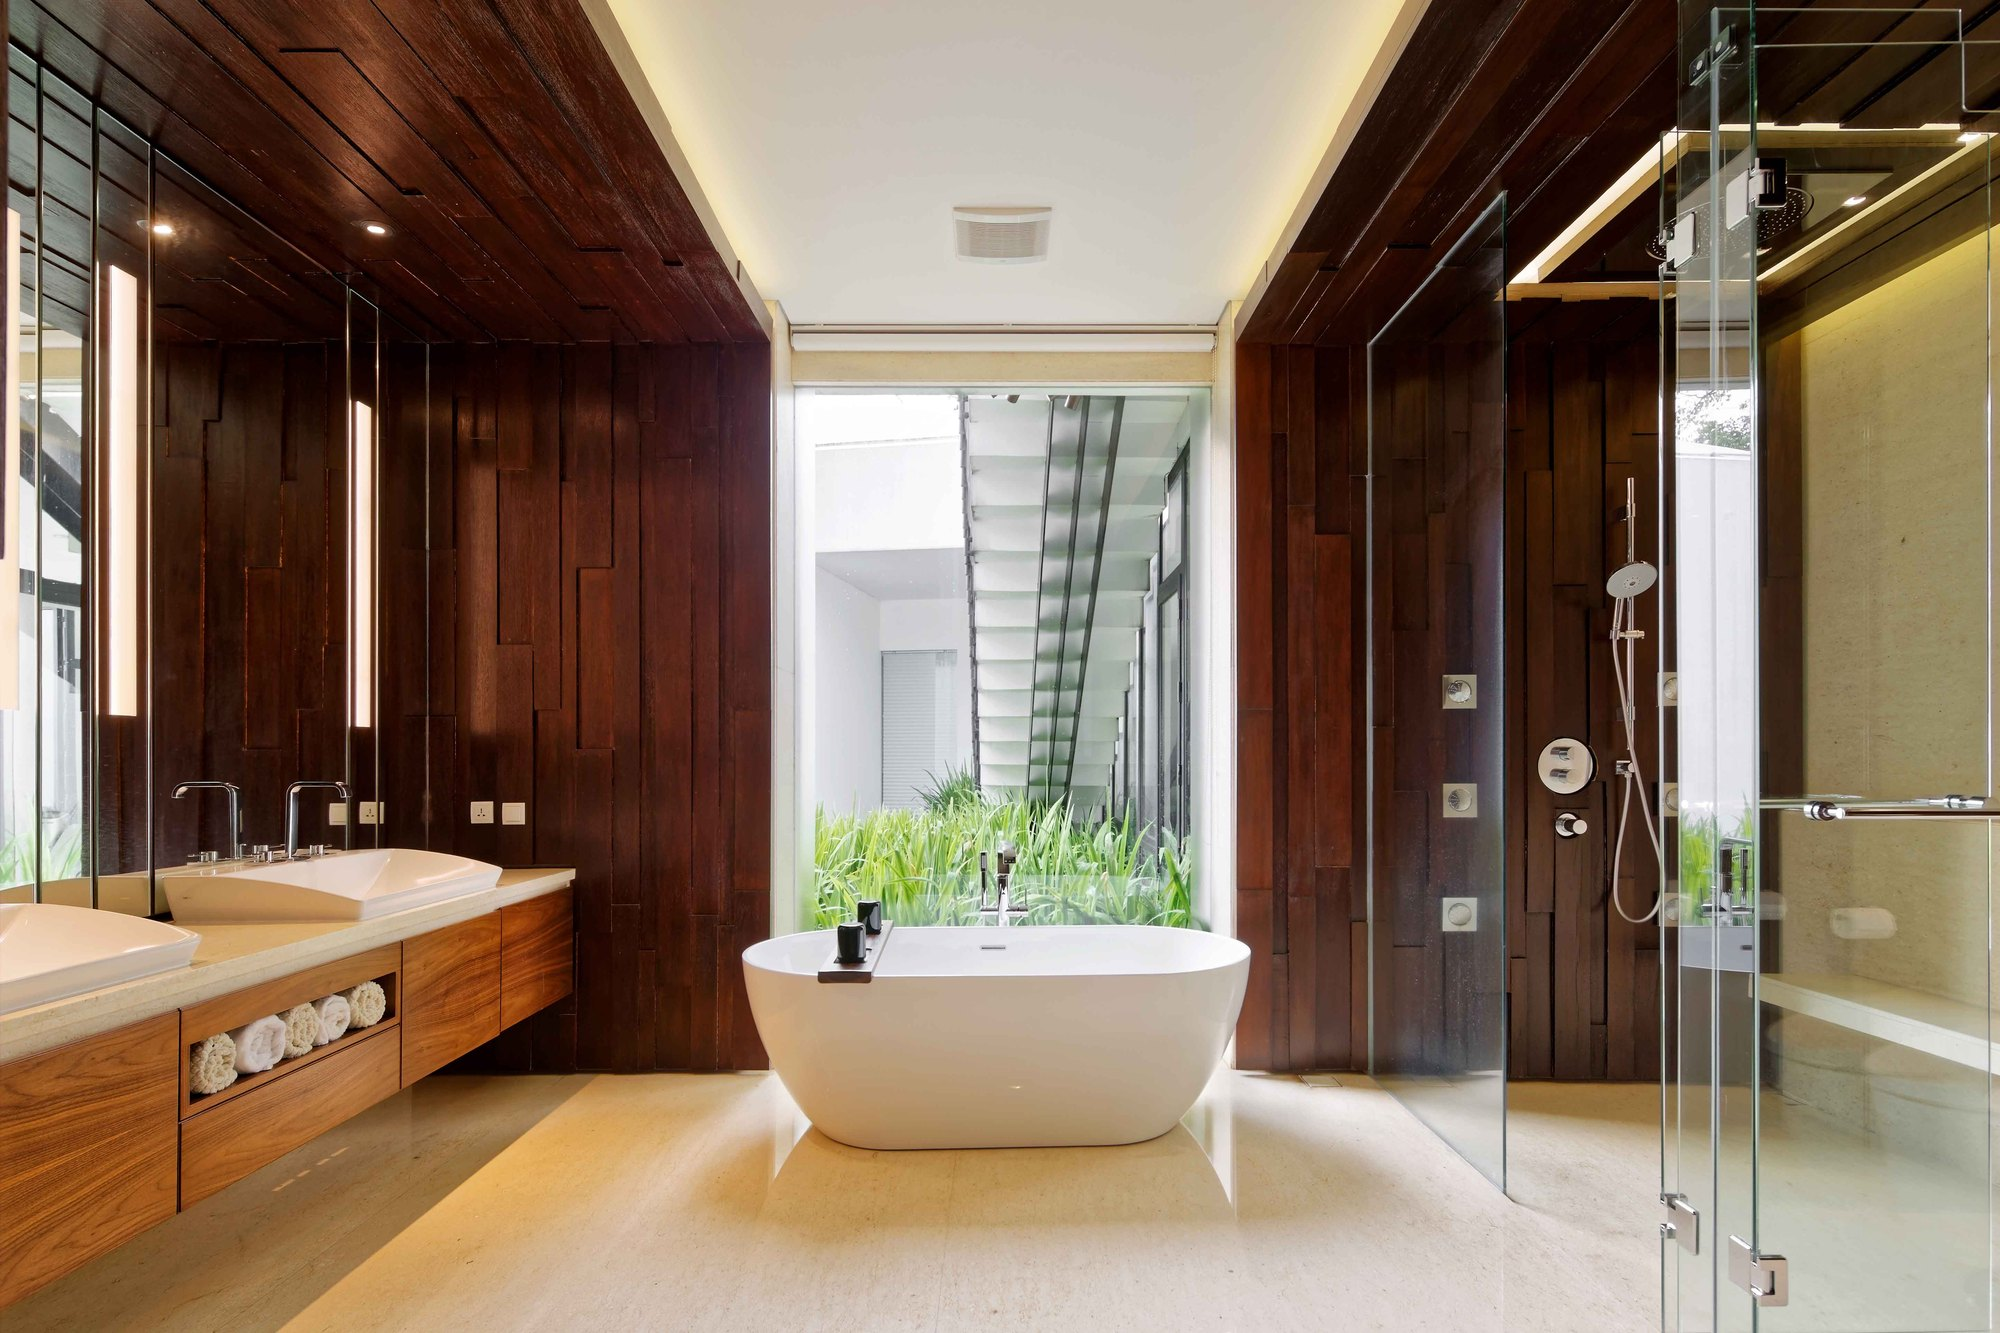 Wood adds warmth and textural contrast to the contemporary bathroom